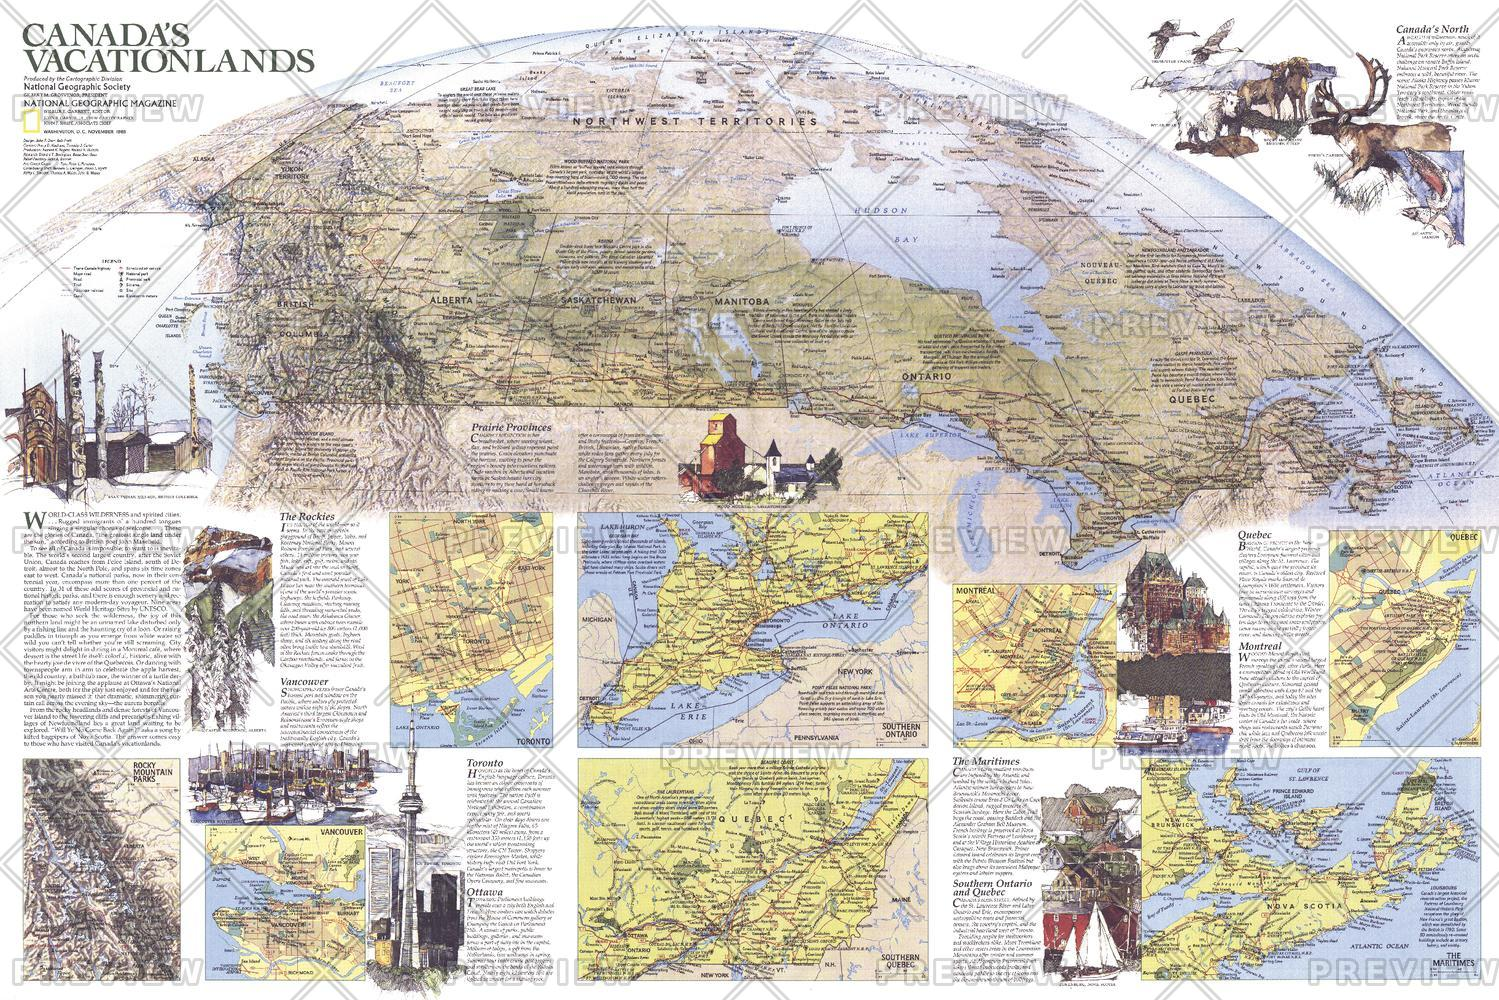 Canada Vacationlands  -  Published 1985